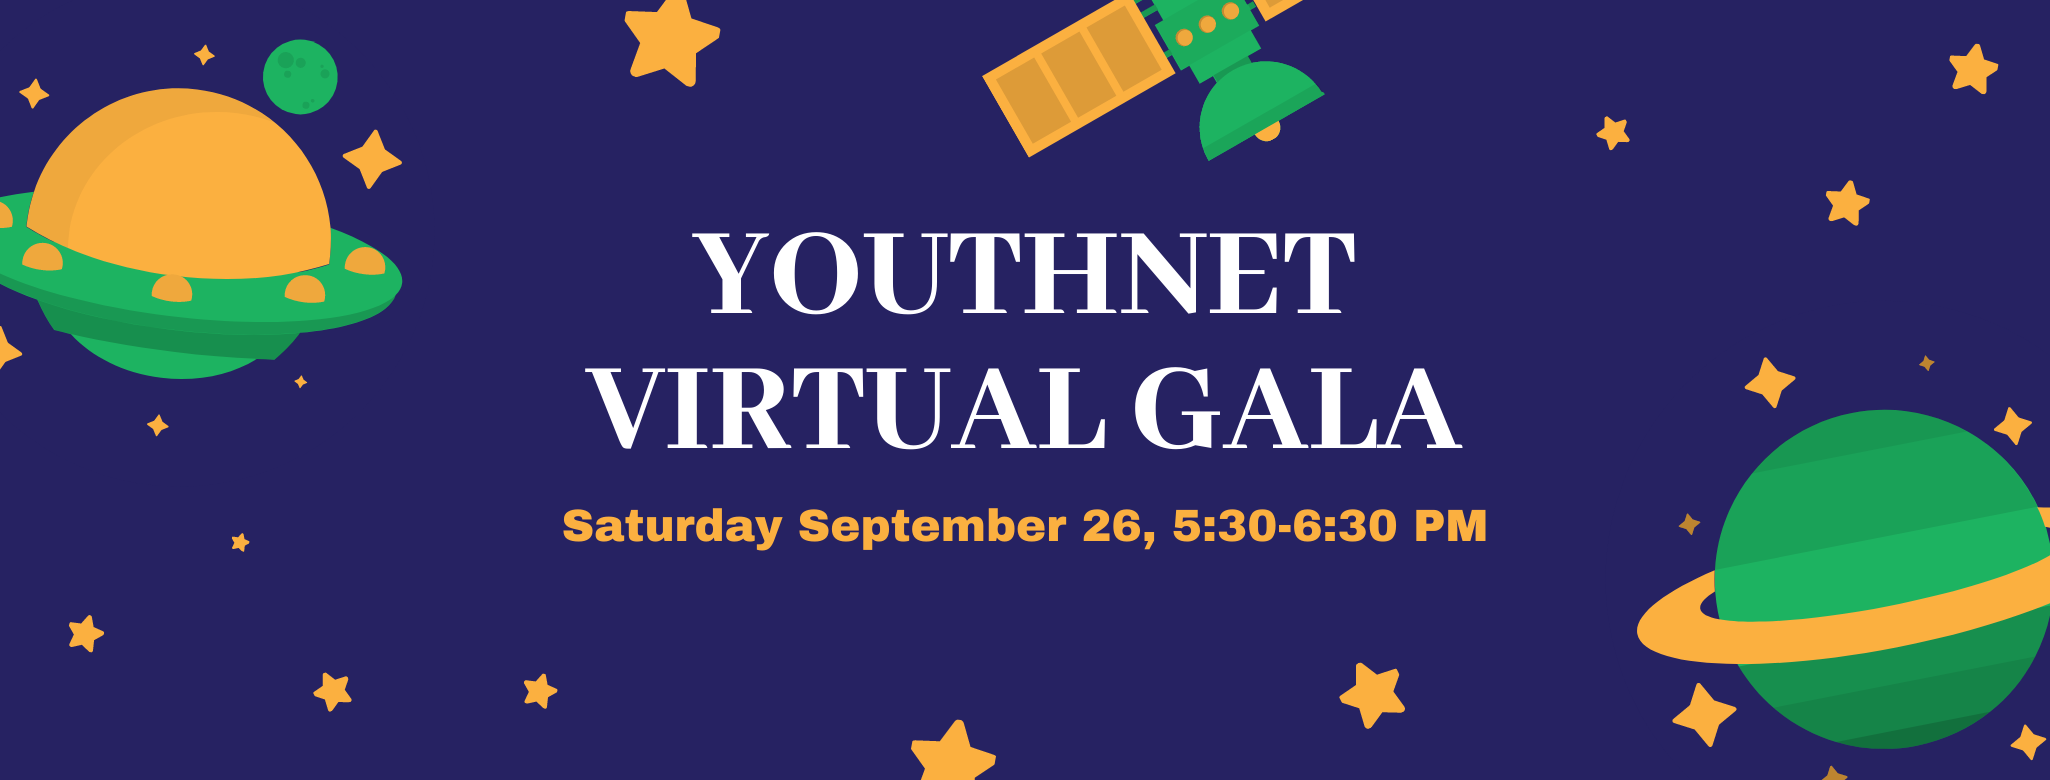 Youthnet Virtual Gala